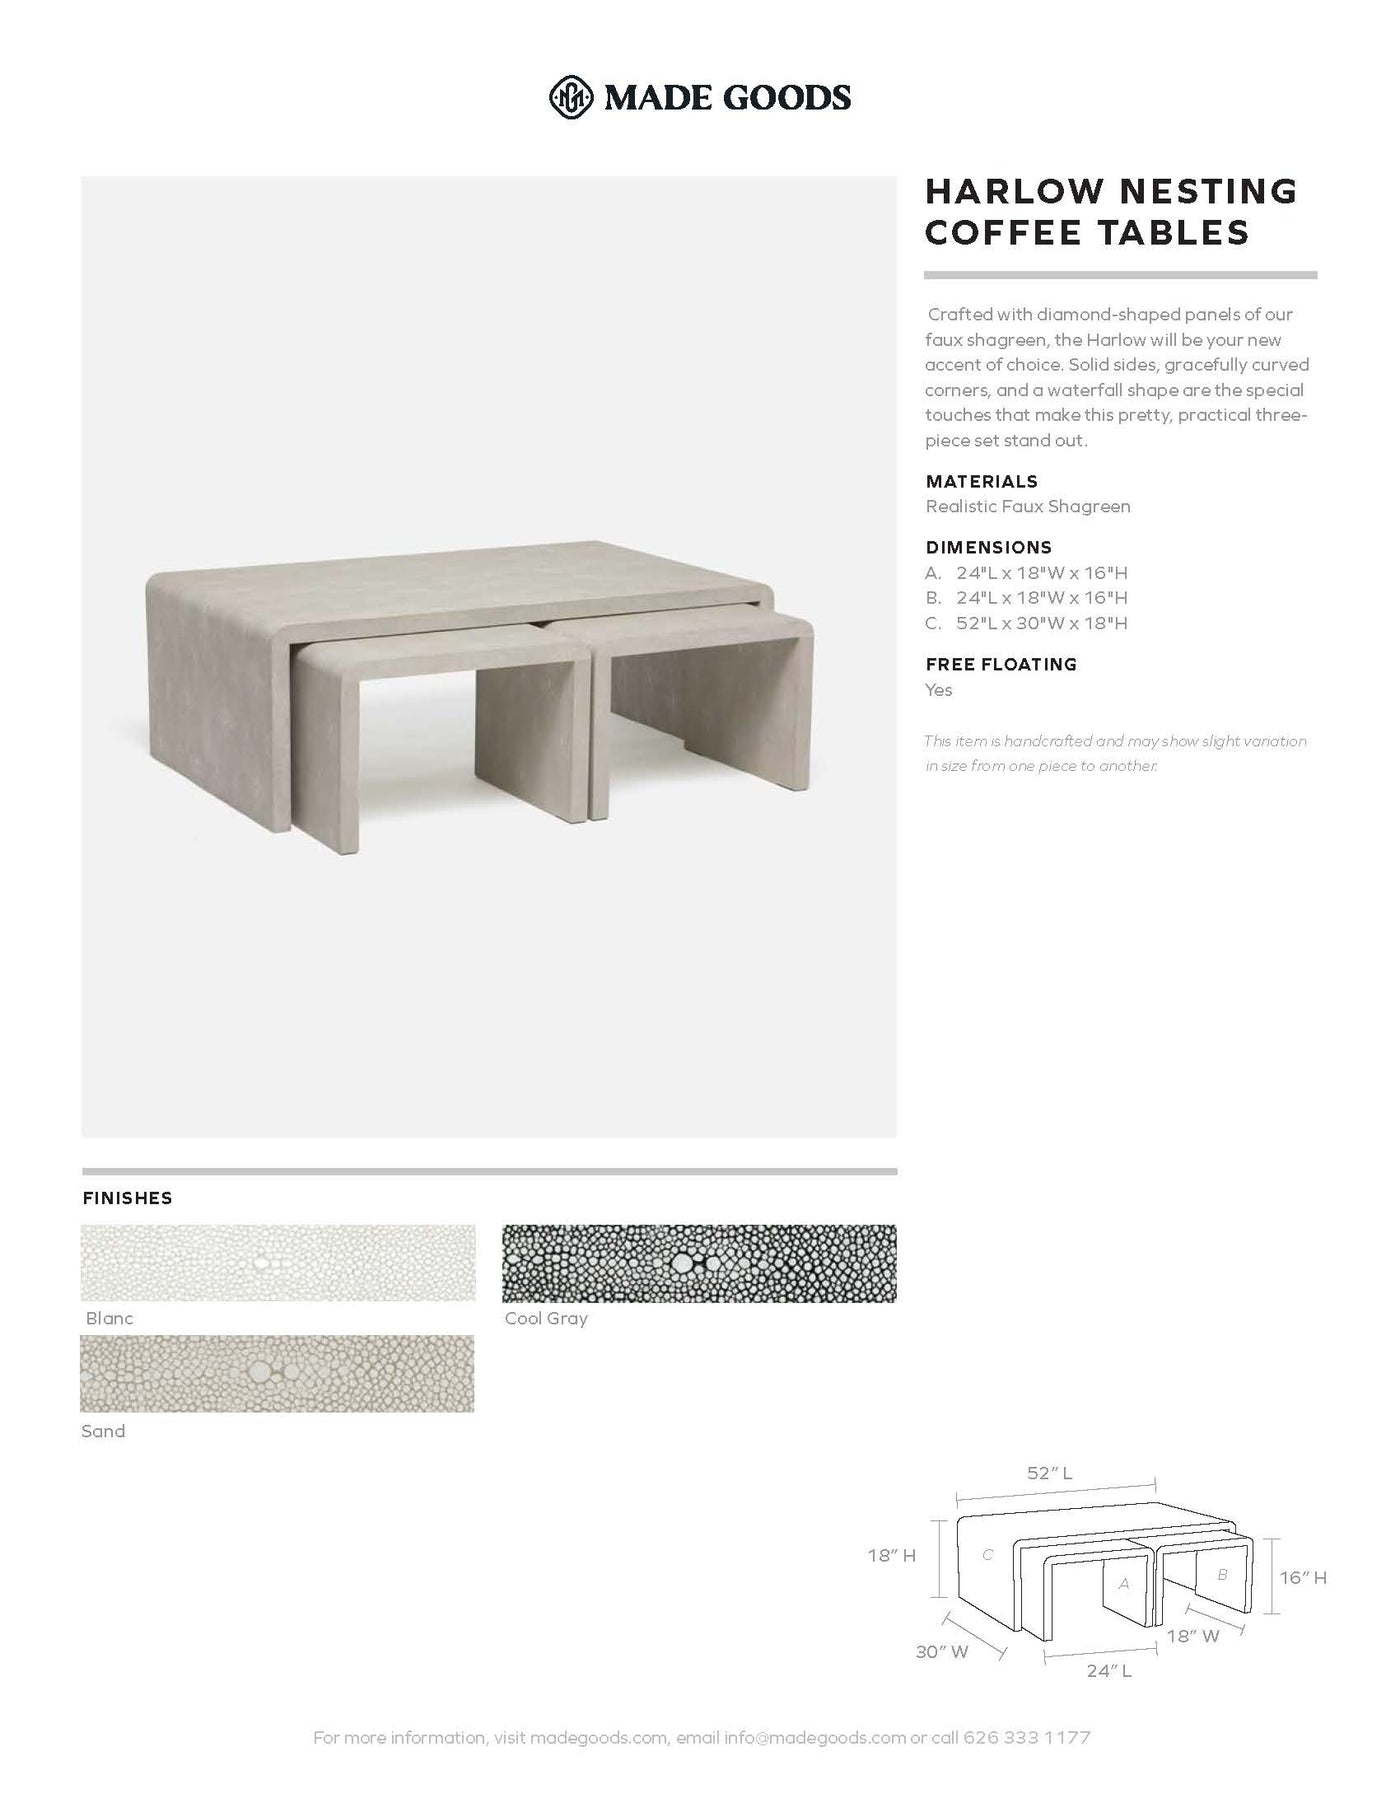 made goods harlow nesting coffee tables tearsheet